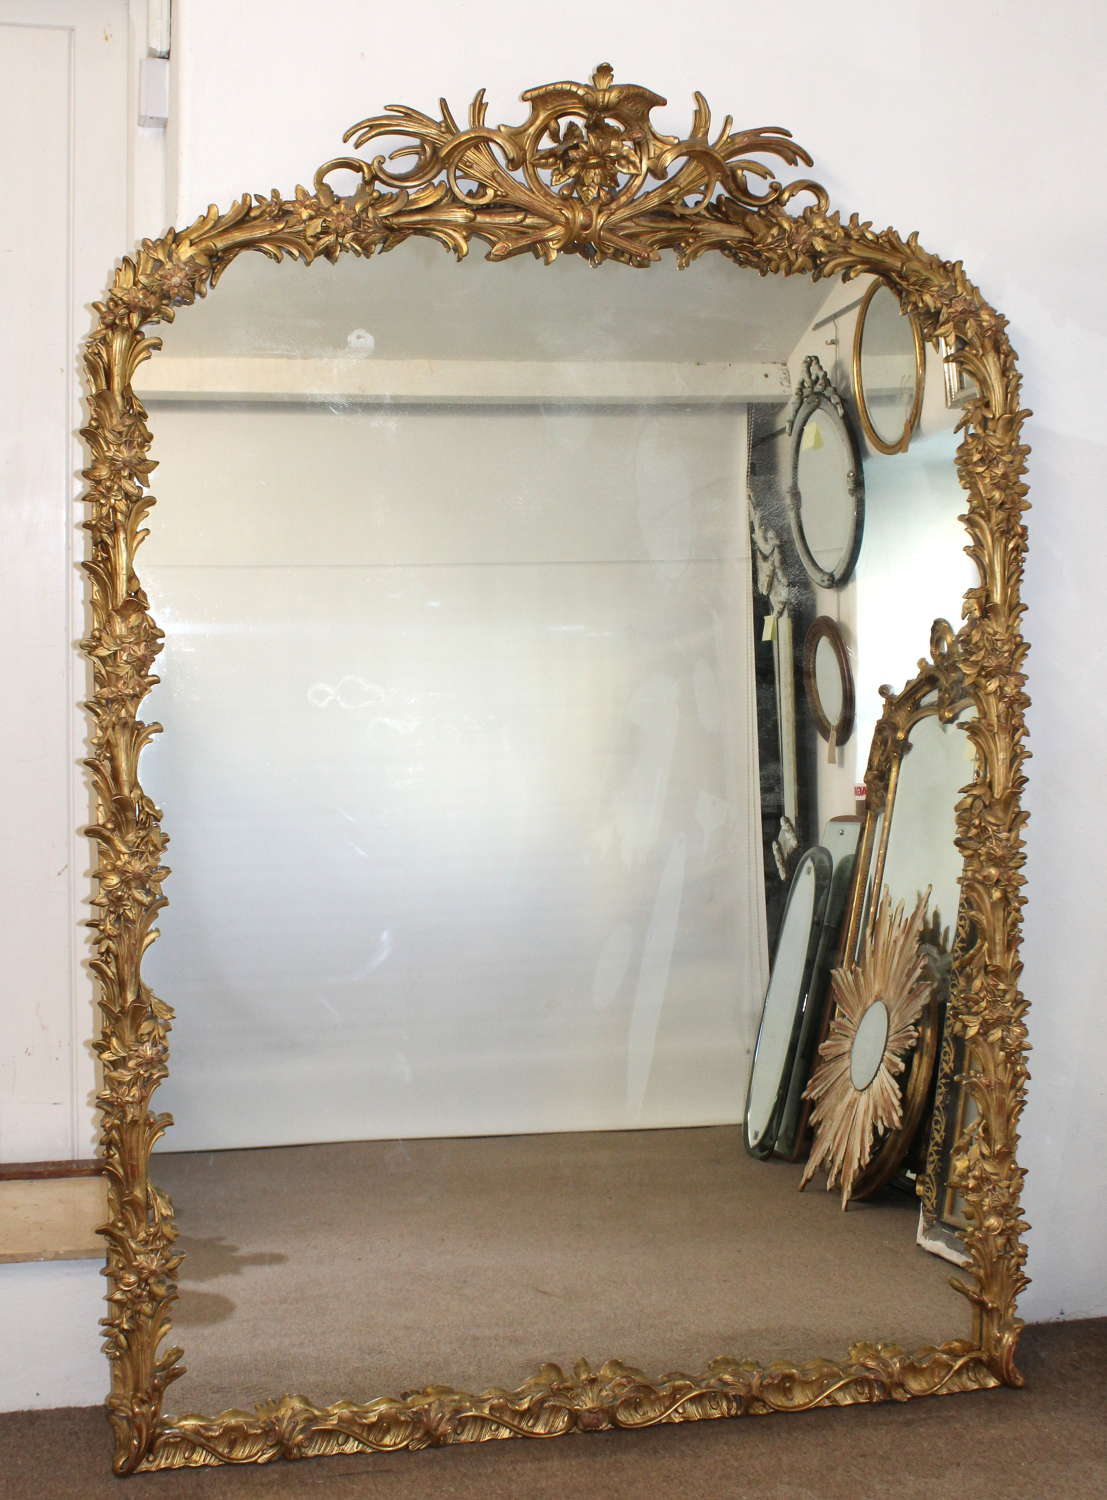 Large, spectacular, decorative antique French mirror